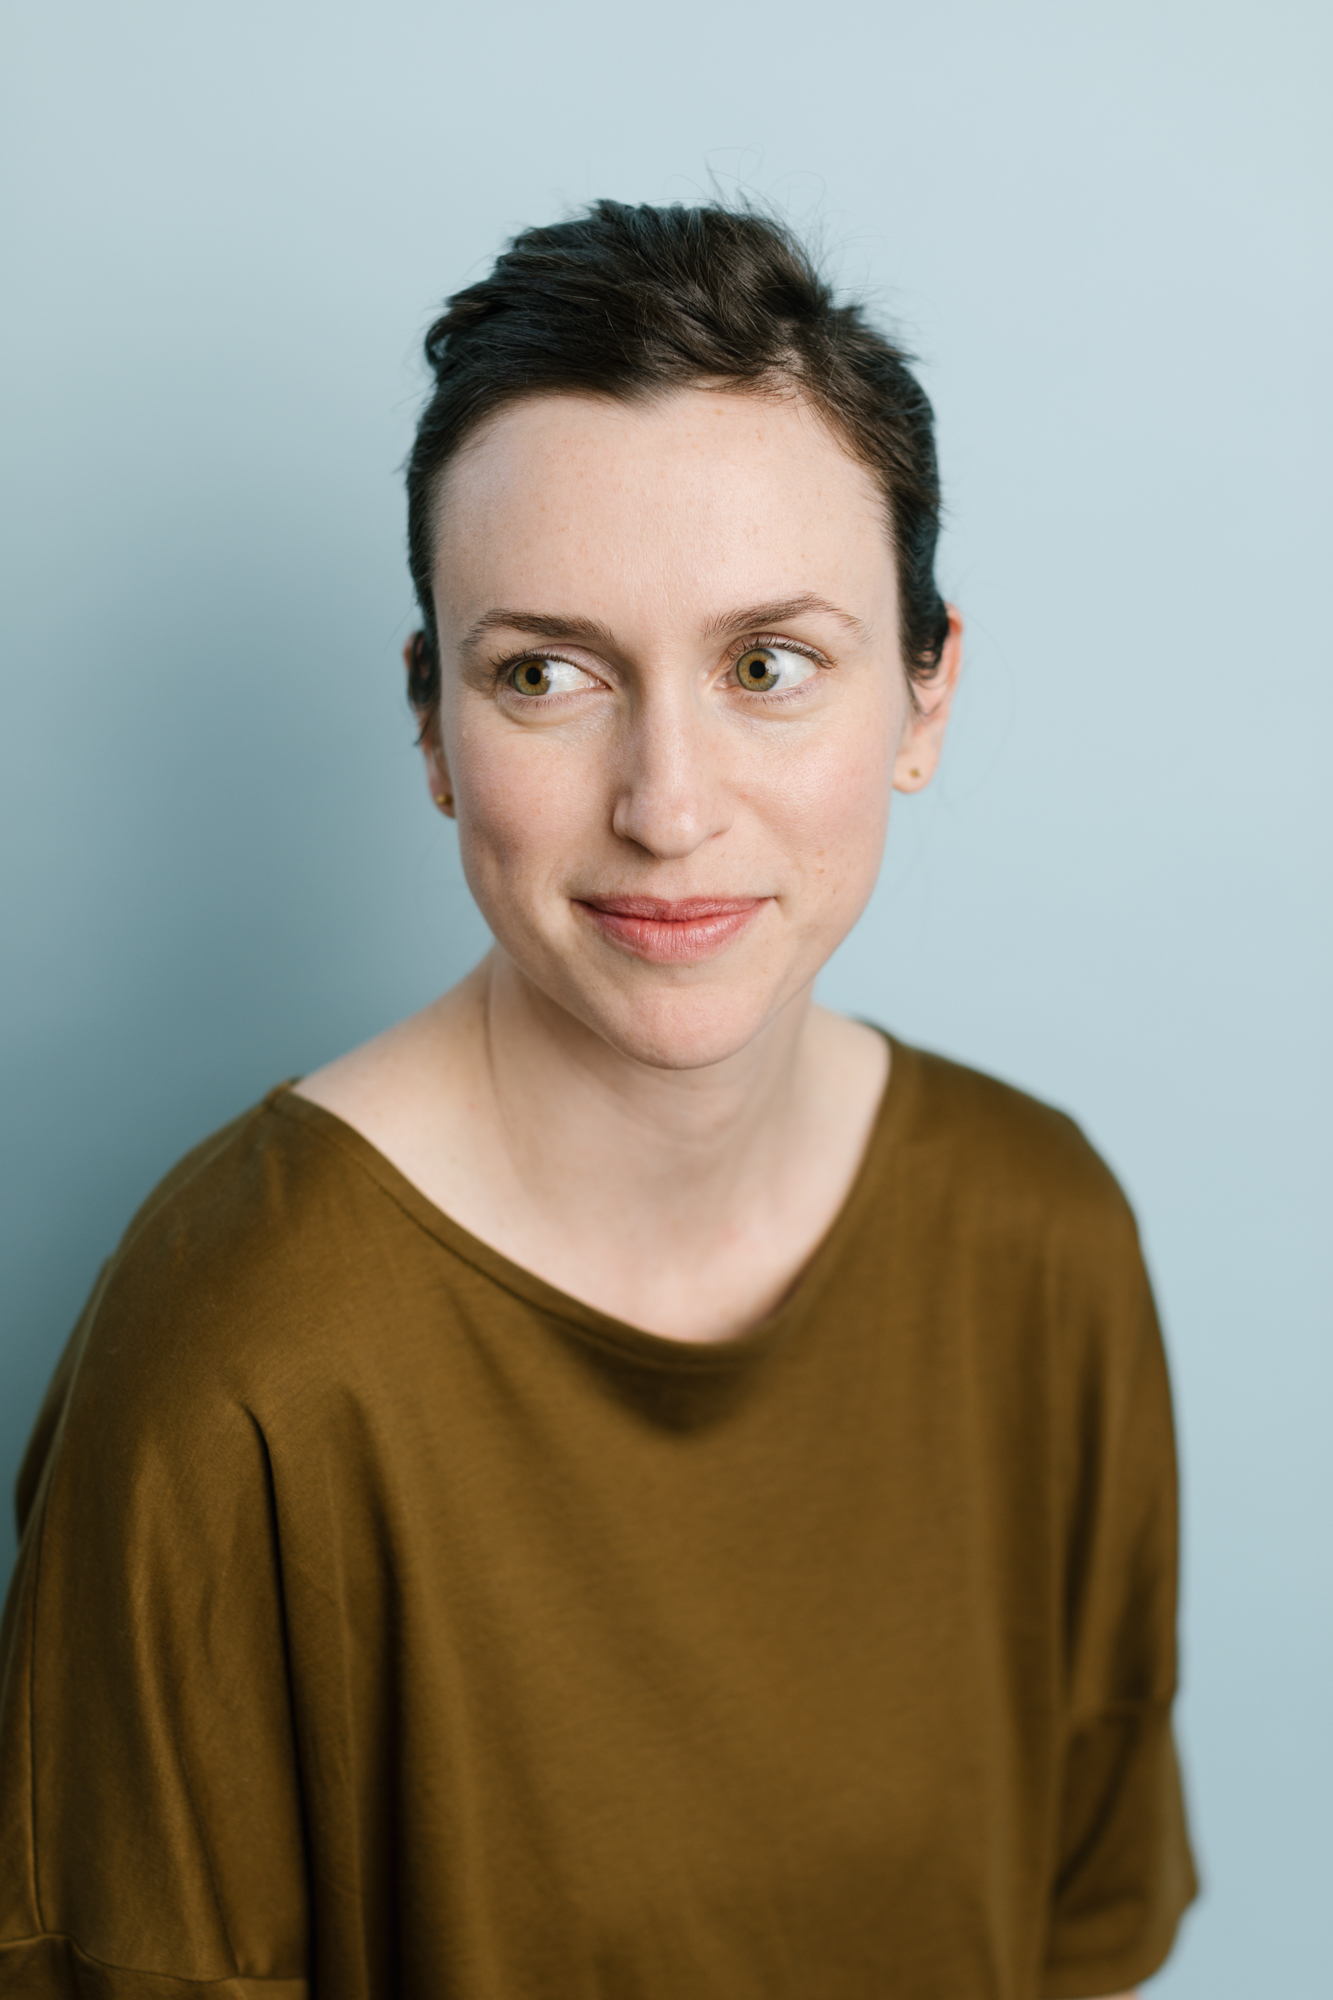 A headshot of a woman in a photography and videography studio in Bloomington, Indiana.